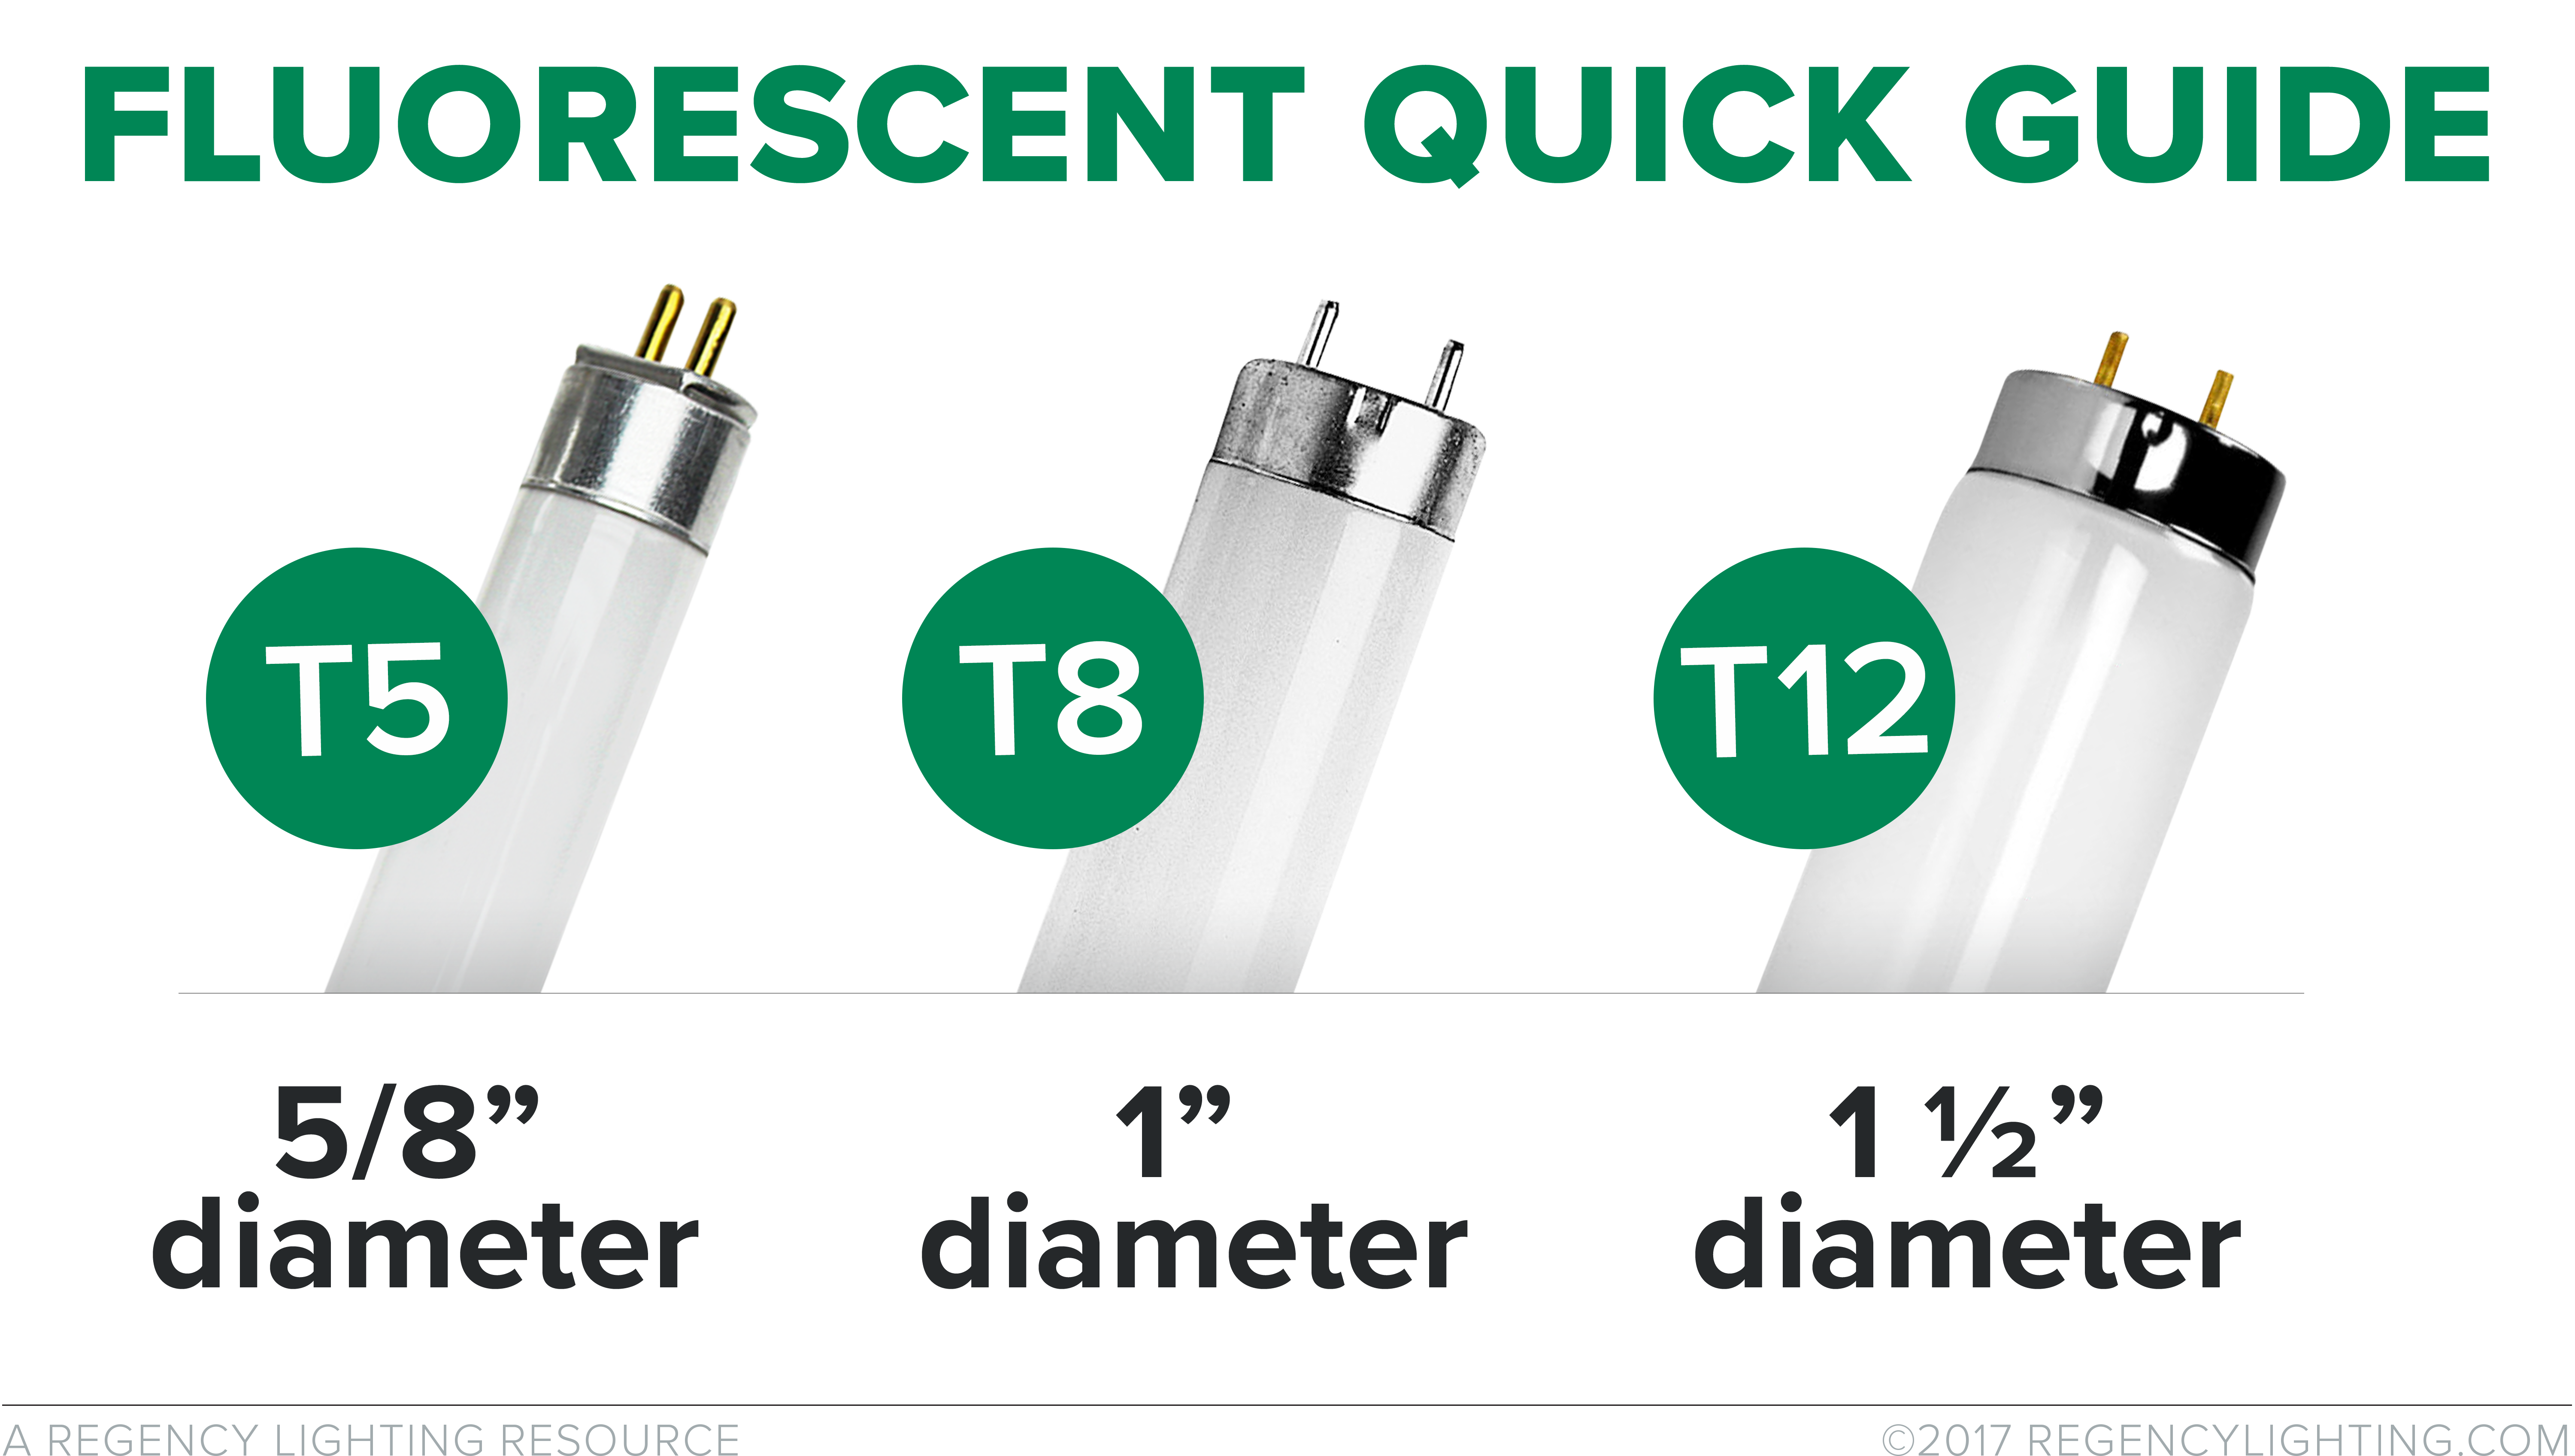 Fs 2 Lamp Ballast Wiring Diagram Diagrams 4 Bulb T12 A Plug And Play Led Replacement For T12s Yep Pros Cons Explored Rh Insights Regencylighting Com Fluorescent